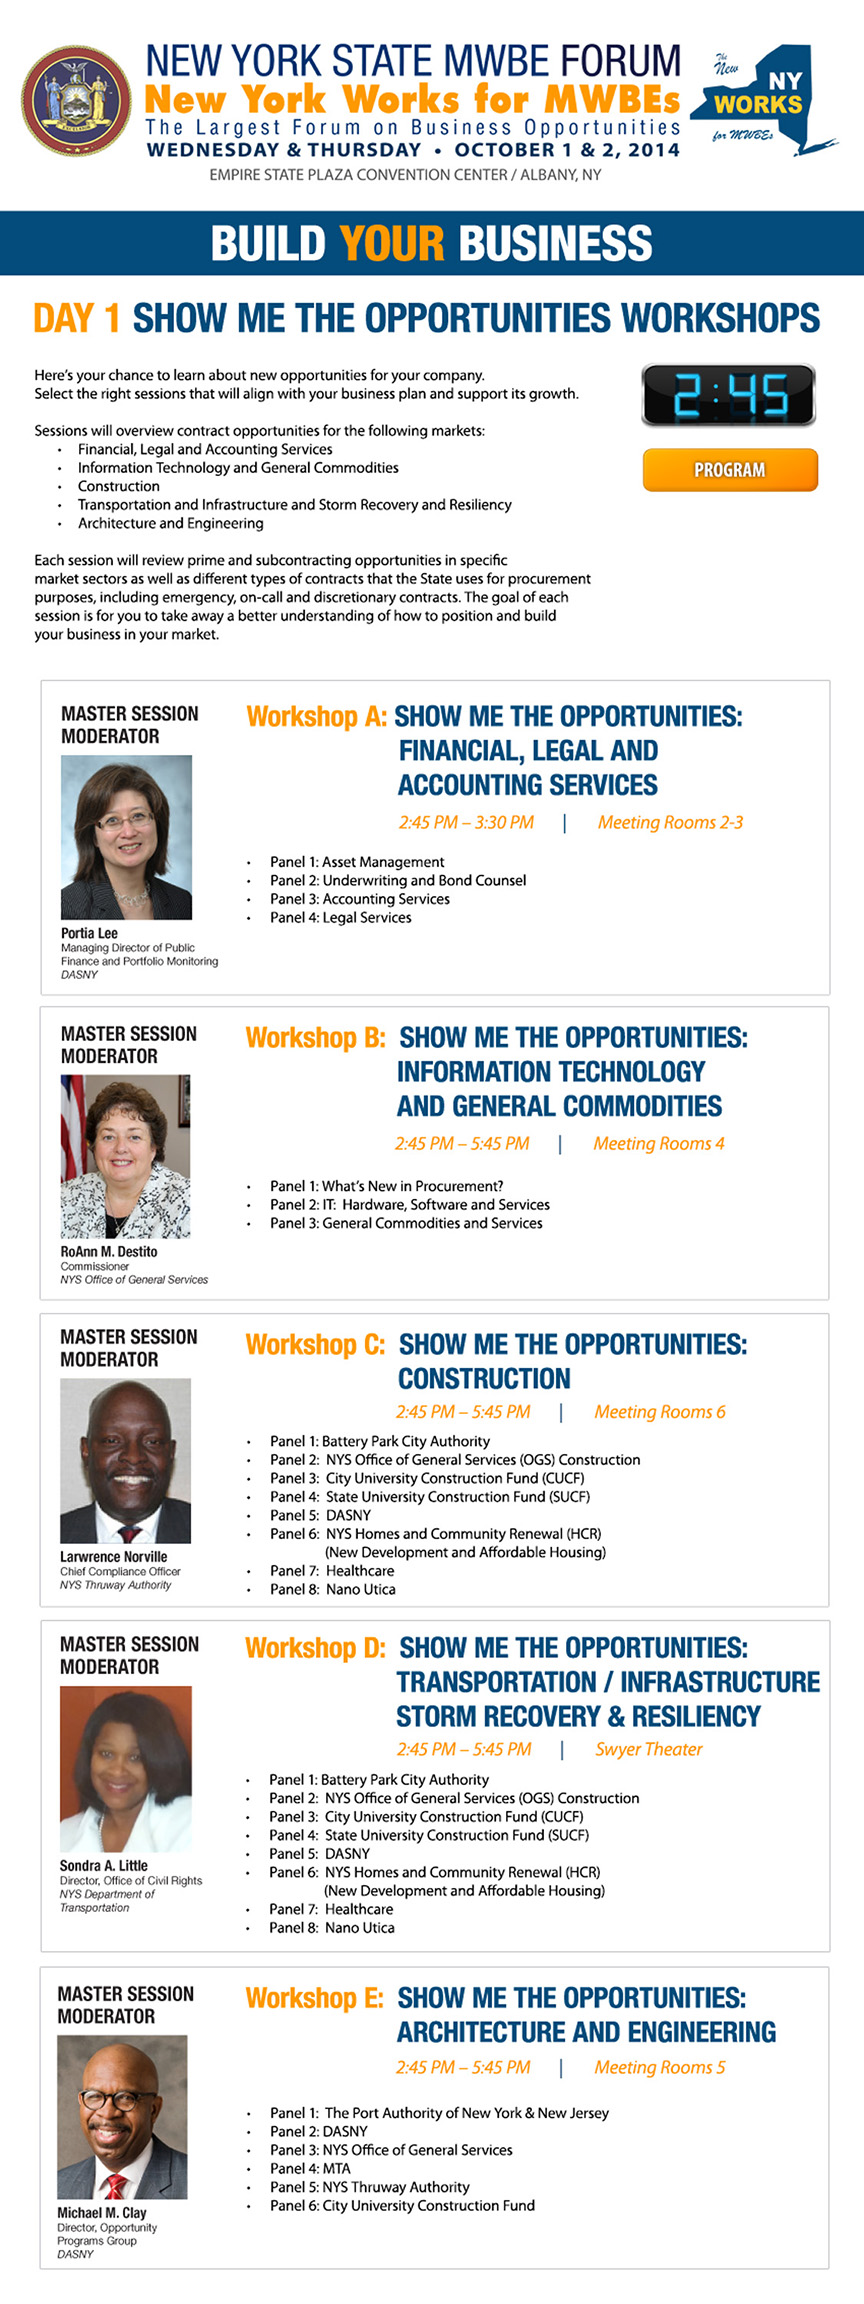 NYS_MWBE_Forum_WORKSHOPS_9-29-14_1.jpg